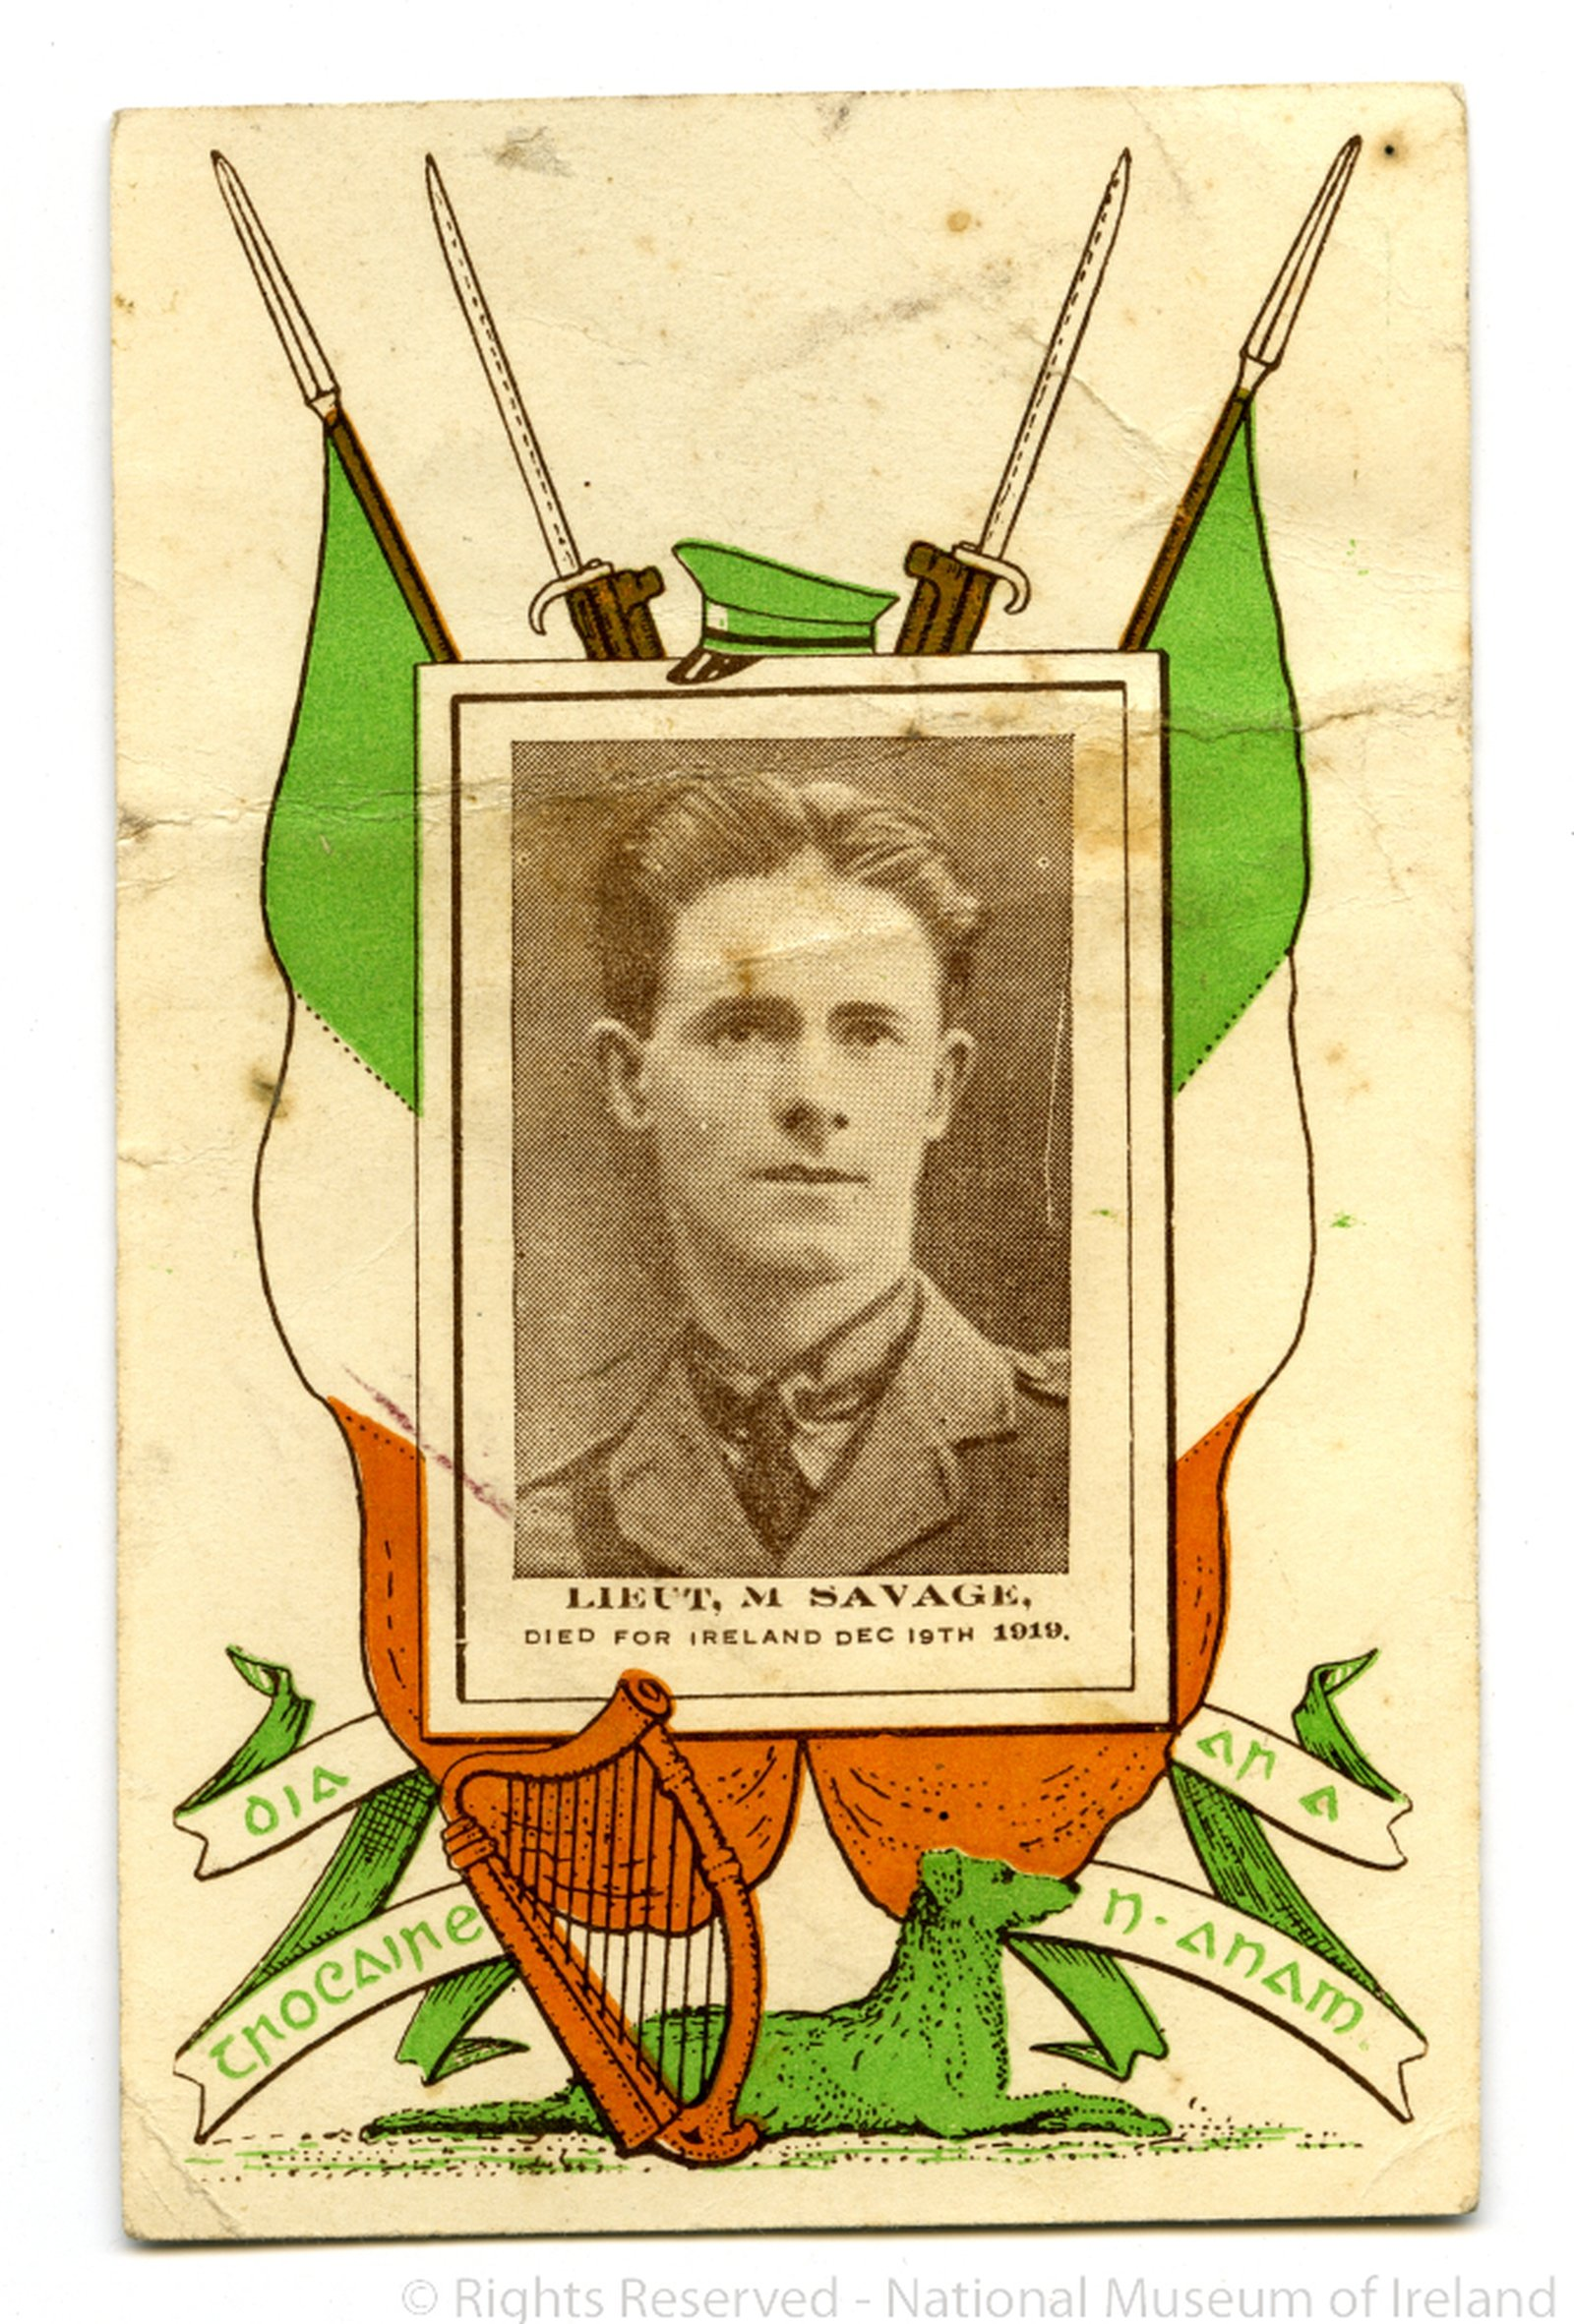 Image - Commemorative postcard for Martin Savage, 'Died for Ireland, Dec 19th, 1919' Image courtesy of the National Museum of Ireland